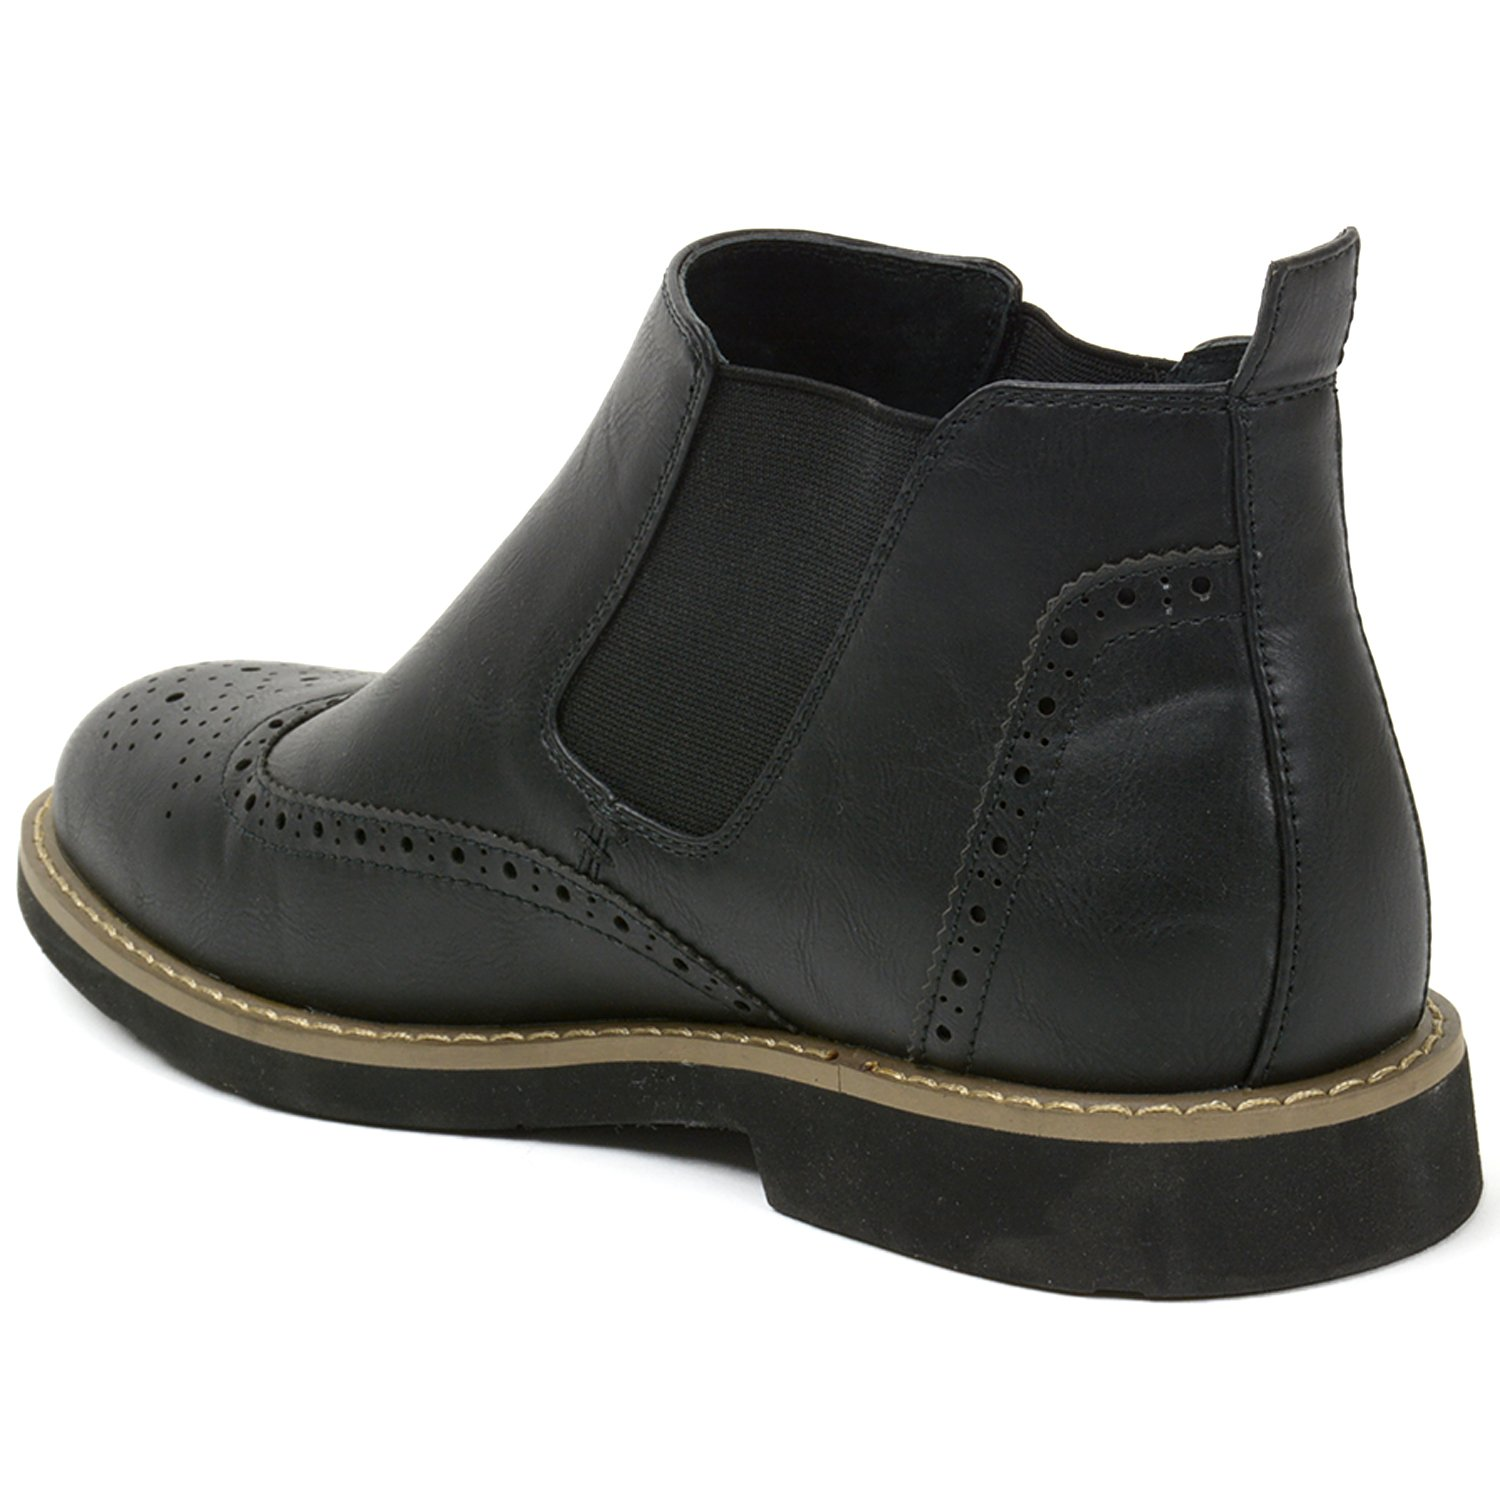 Alpine swiss men's dress shoes and boots